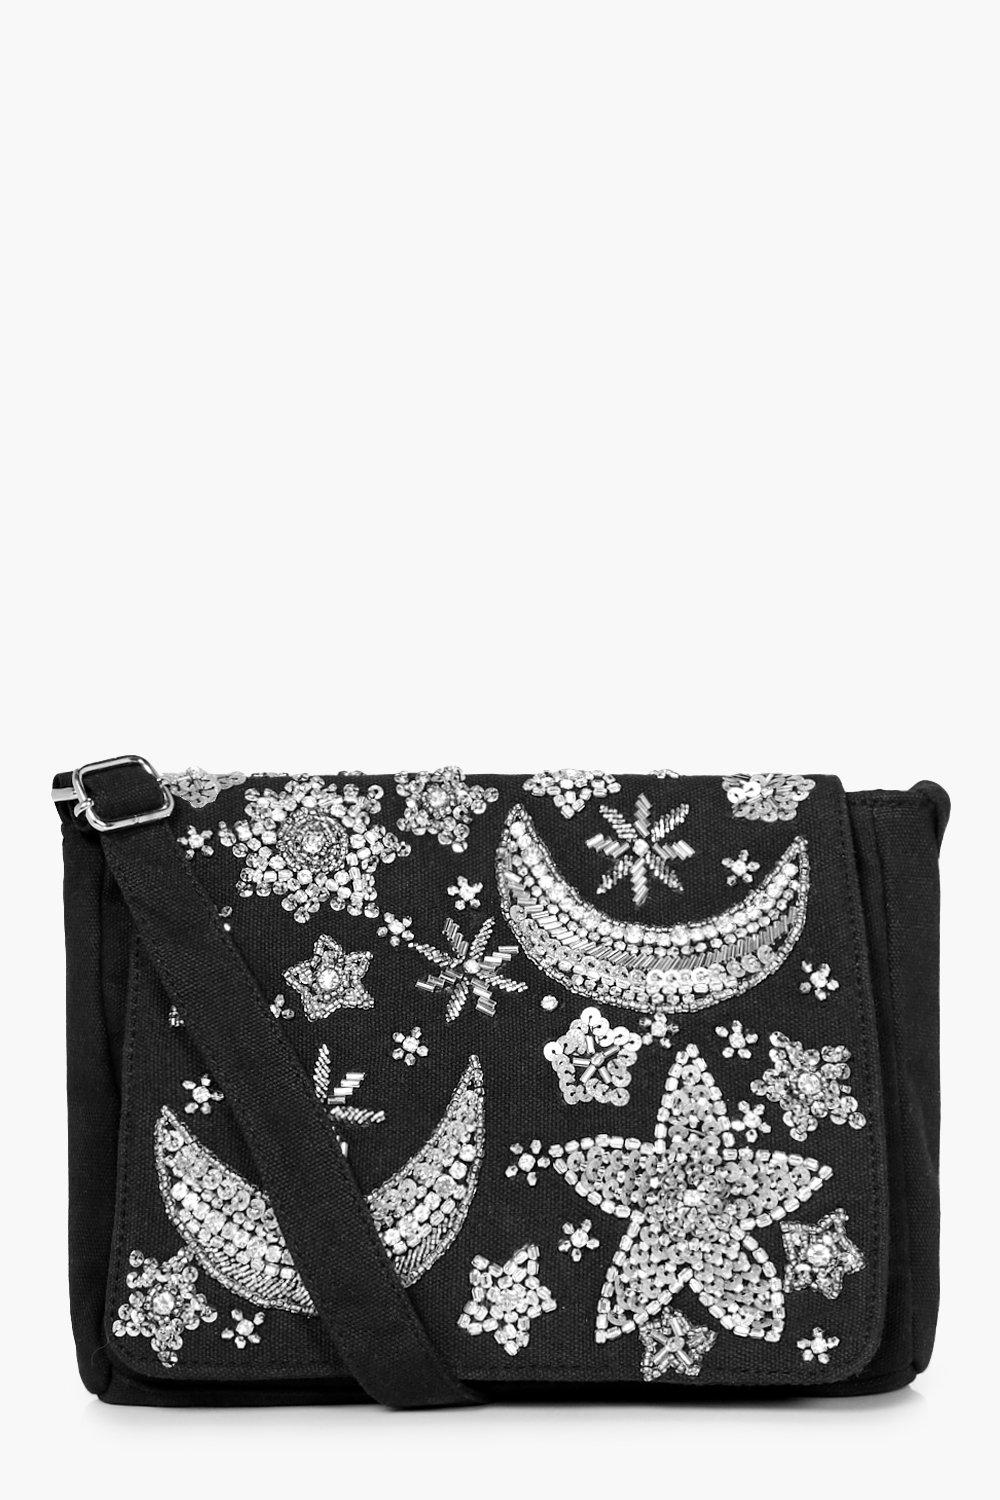 Moon & Stars Embellished Cross Body - black - Dais